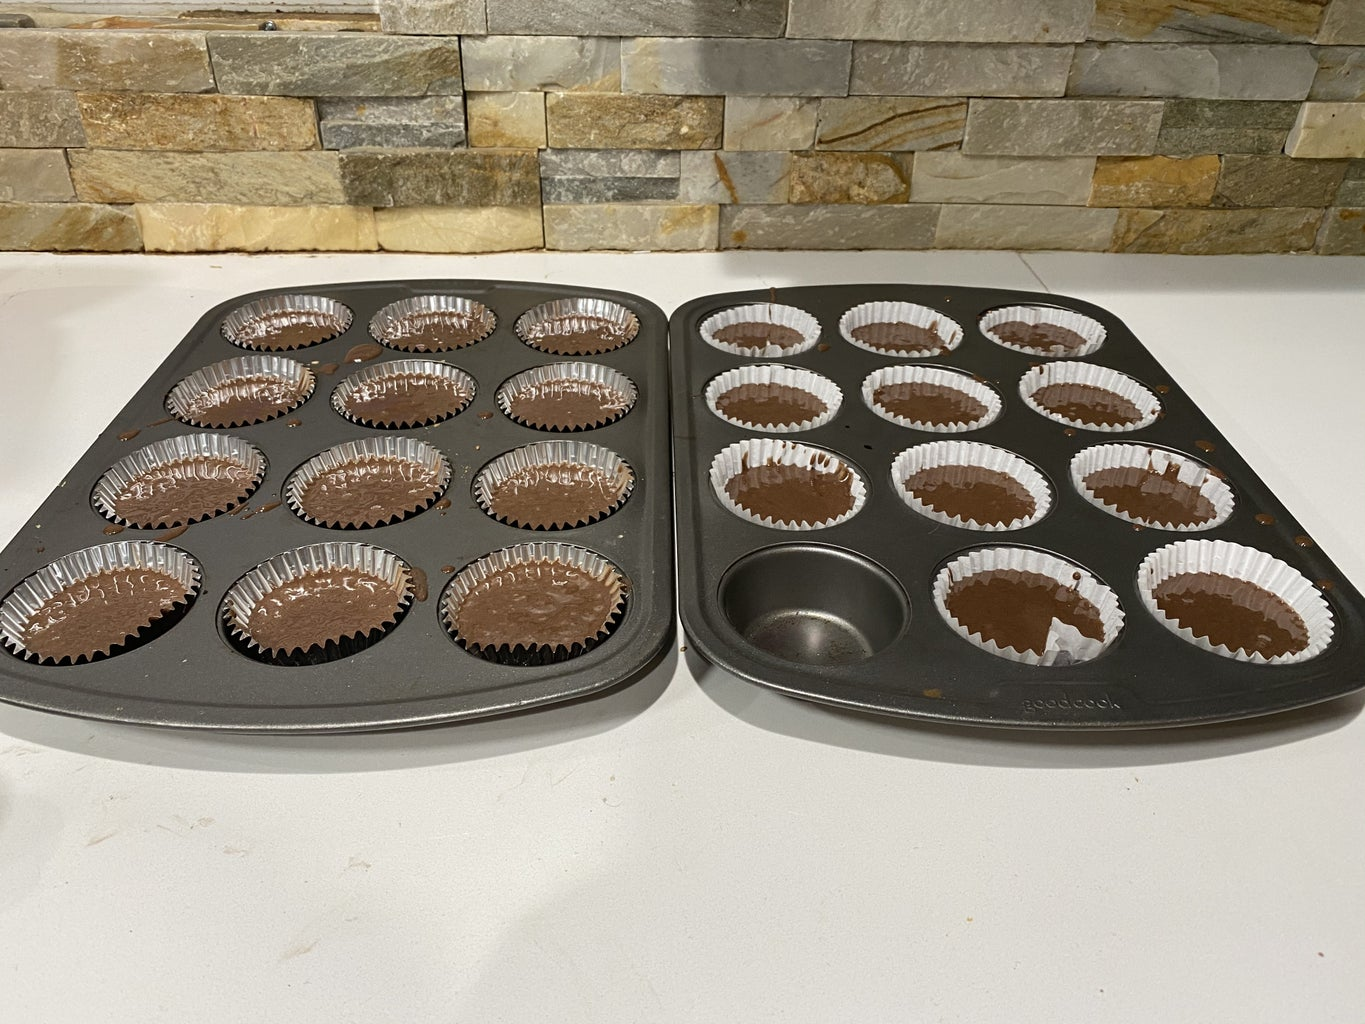 Mix All Dry Ingredients With Wet Ingredients Until Smooth Batter, Put in Cupcake Trays